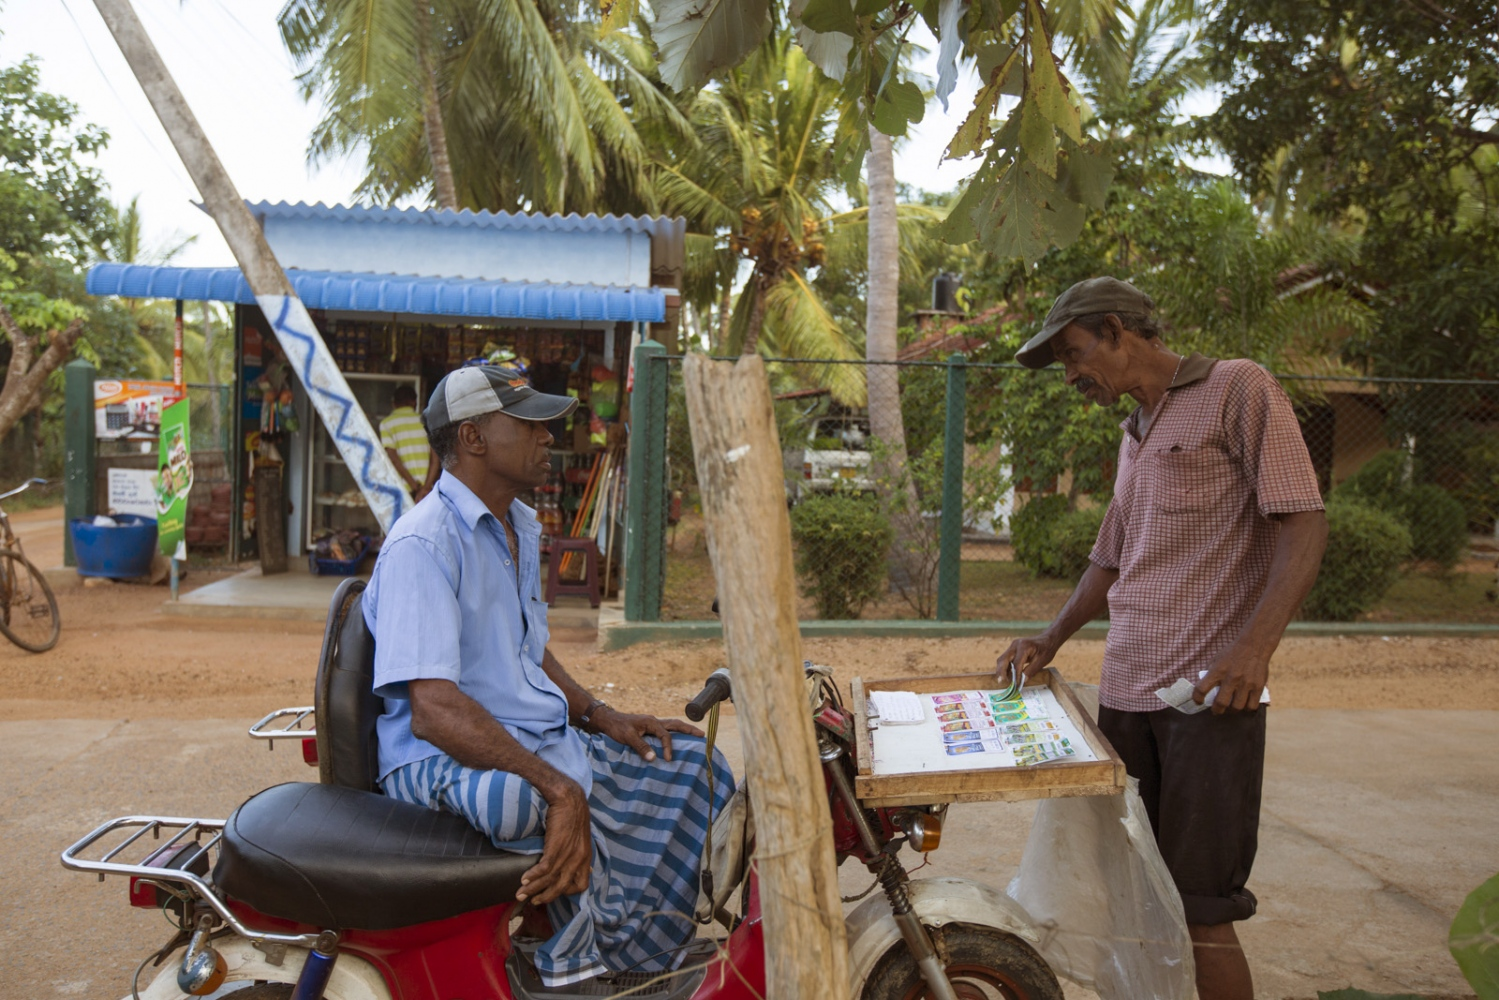 Peter Luis has been physically disabled from Polio since he was 3 years old. He makes his money selling lottery tickets on a specially made three-wheeler motorbike.